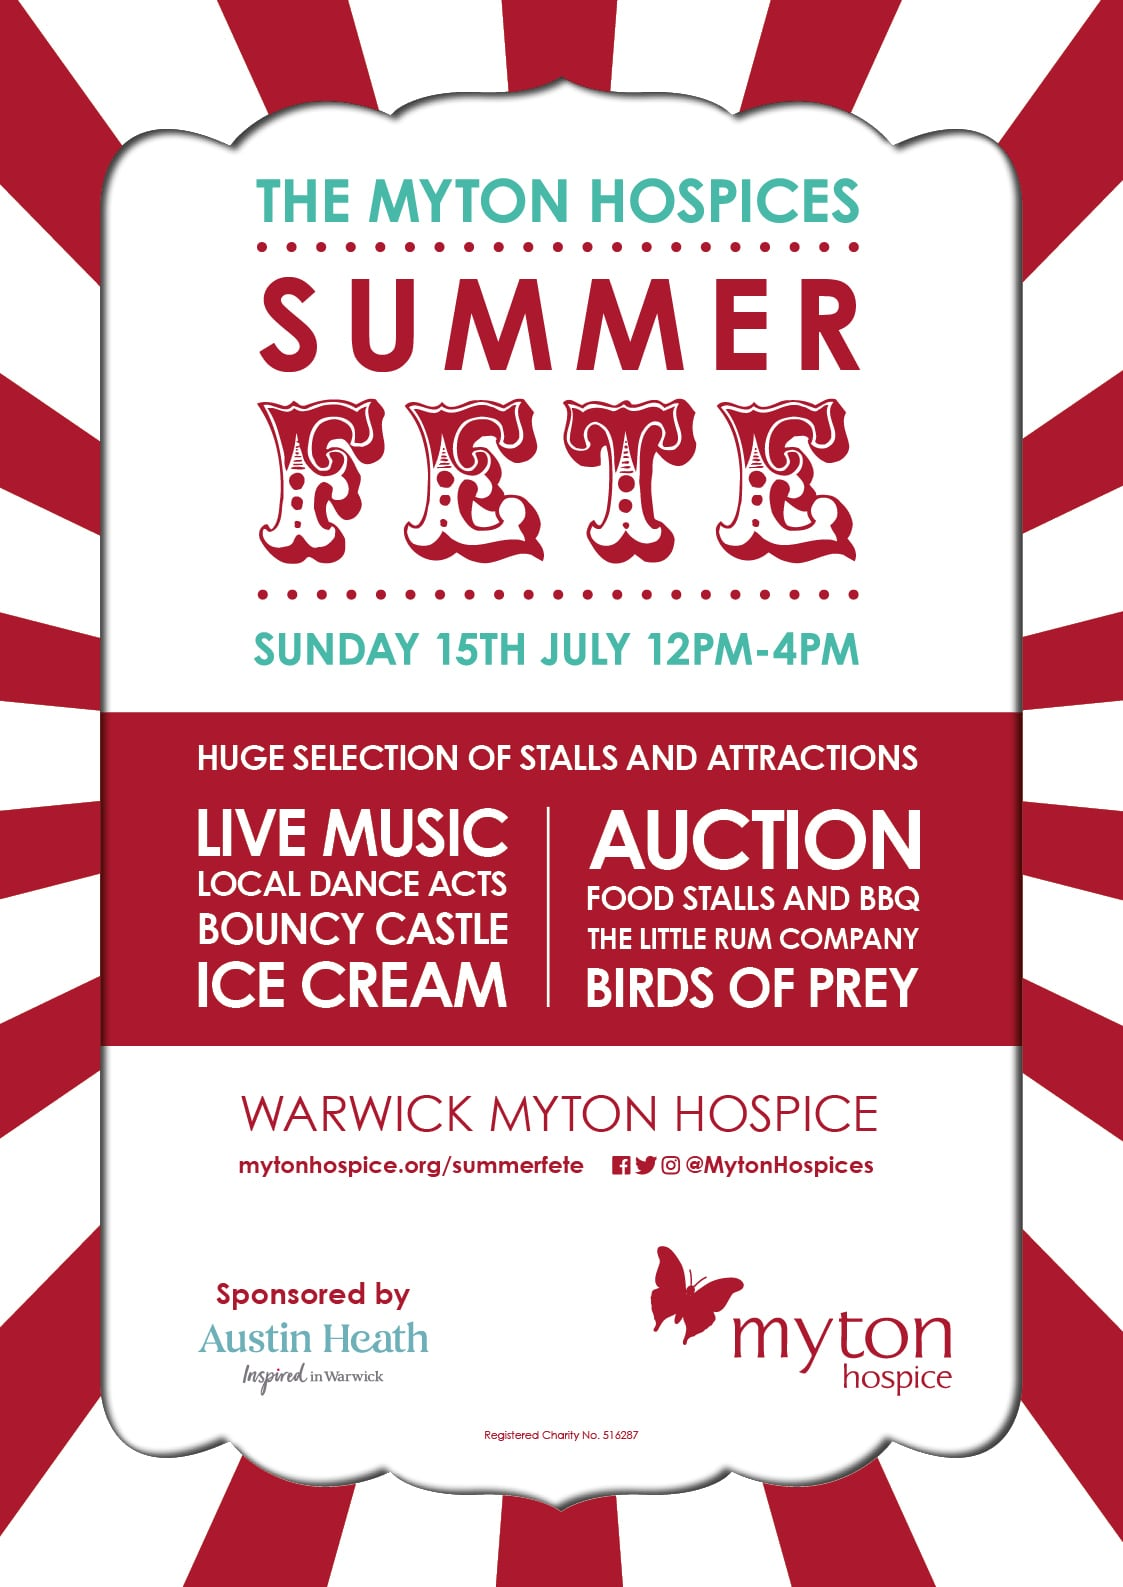 The Myton Hospices - Summer Fete 2018 Channel Image Poster